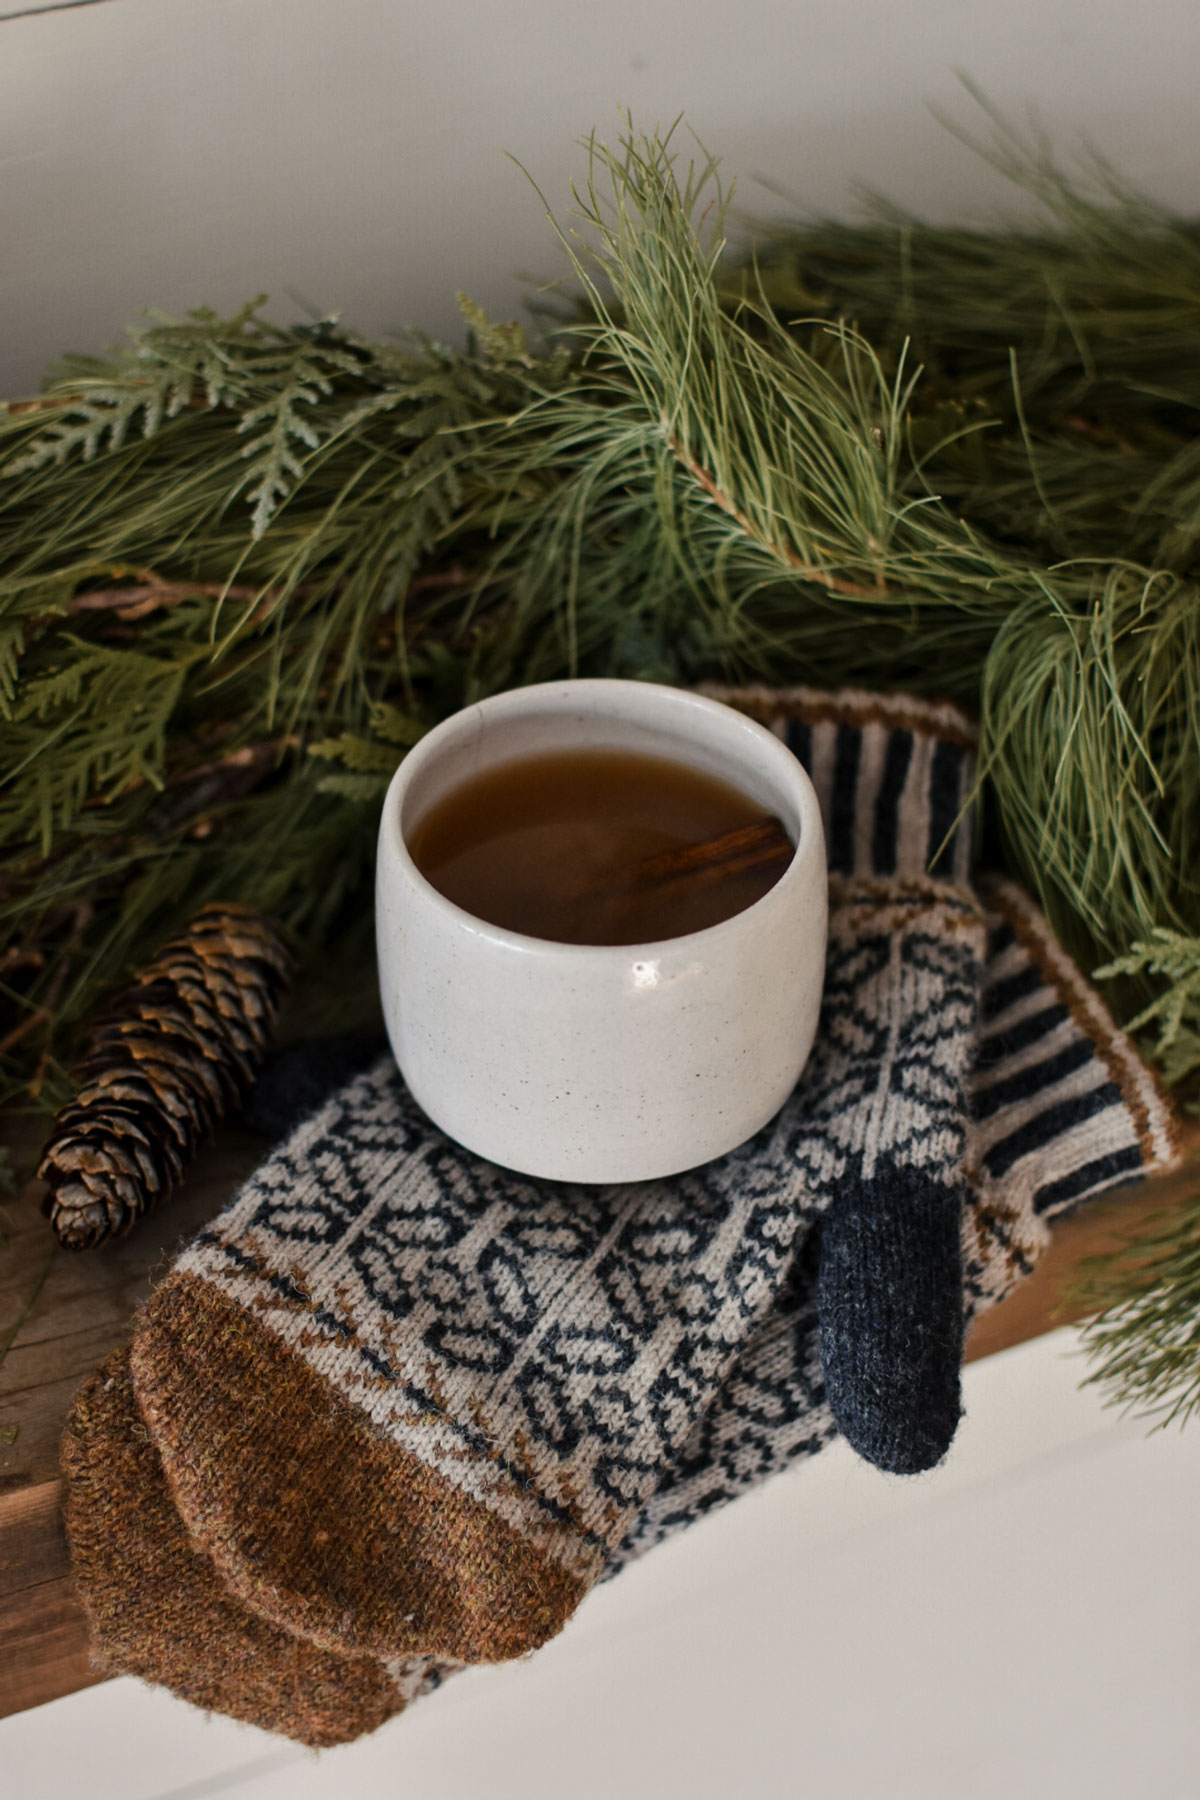 Spiced apple cider in a mug sitting on top of a pair of cozy mittens